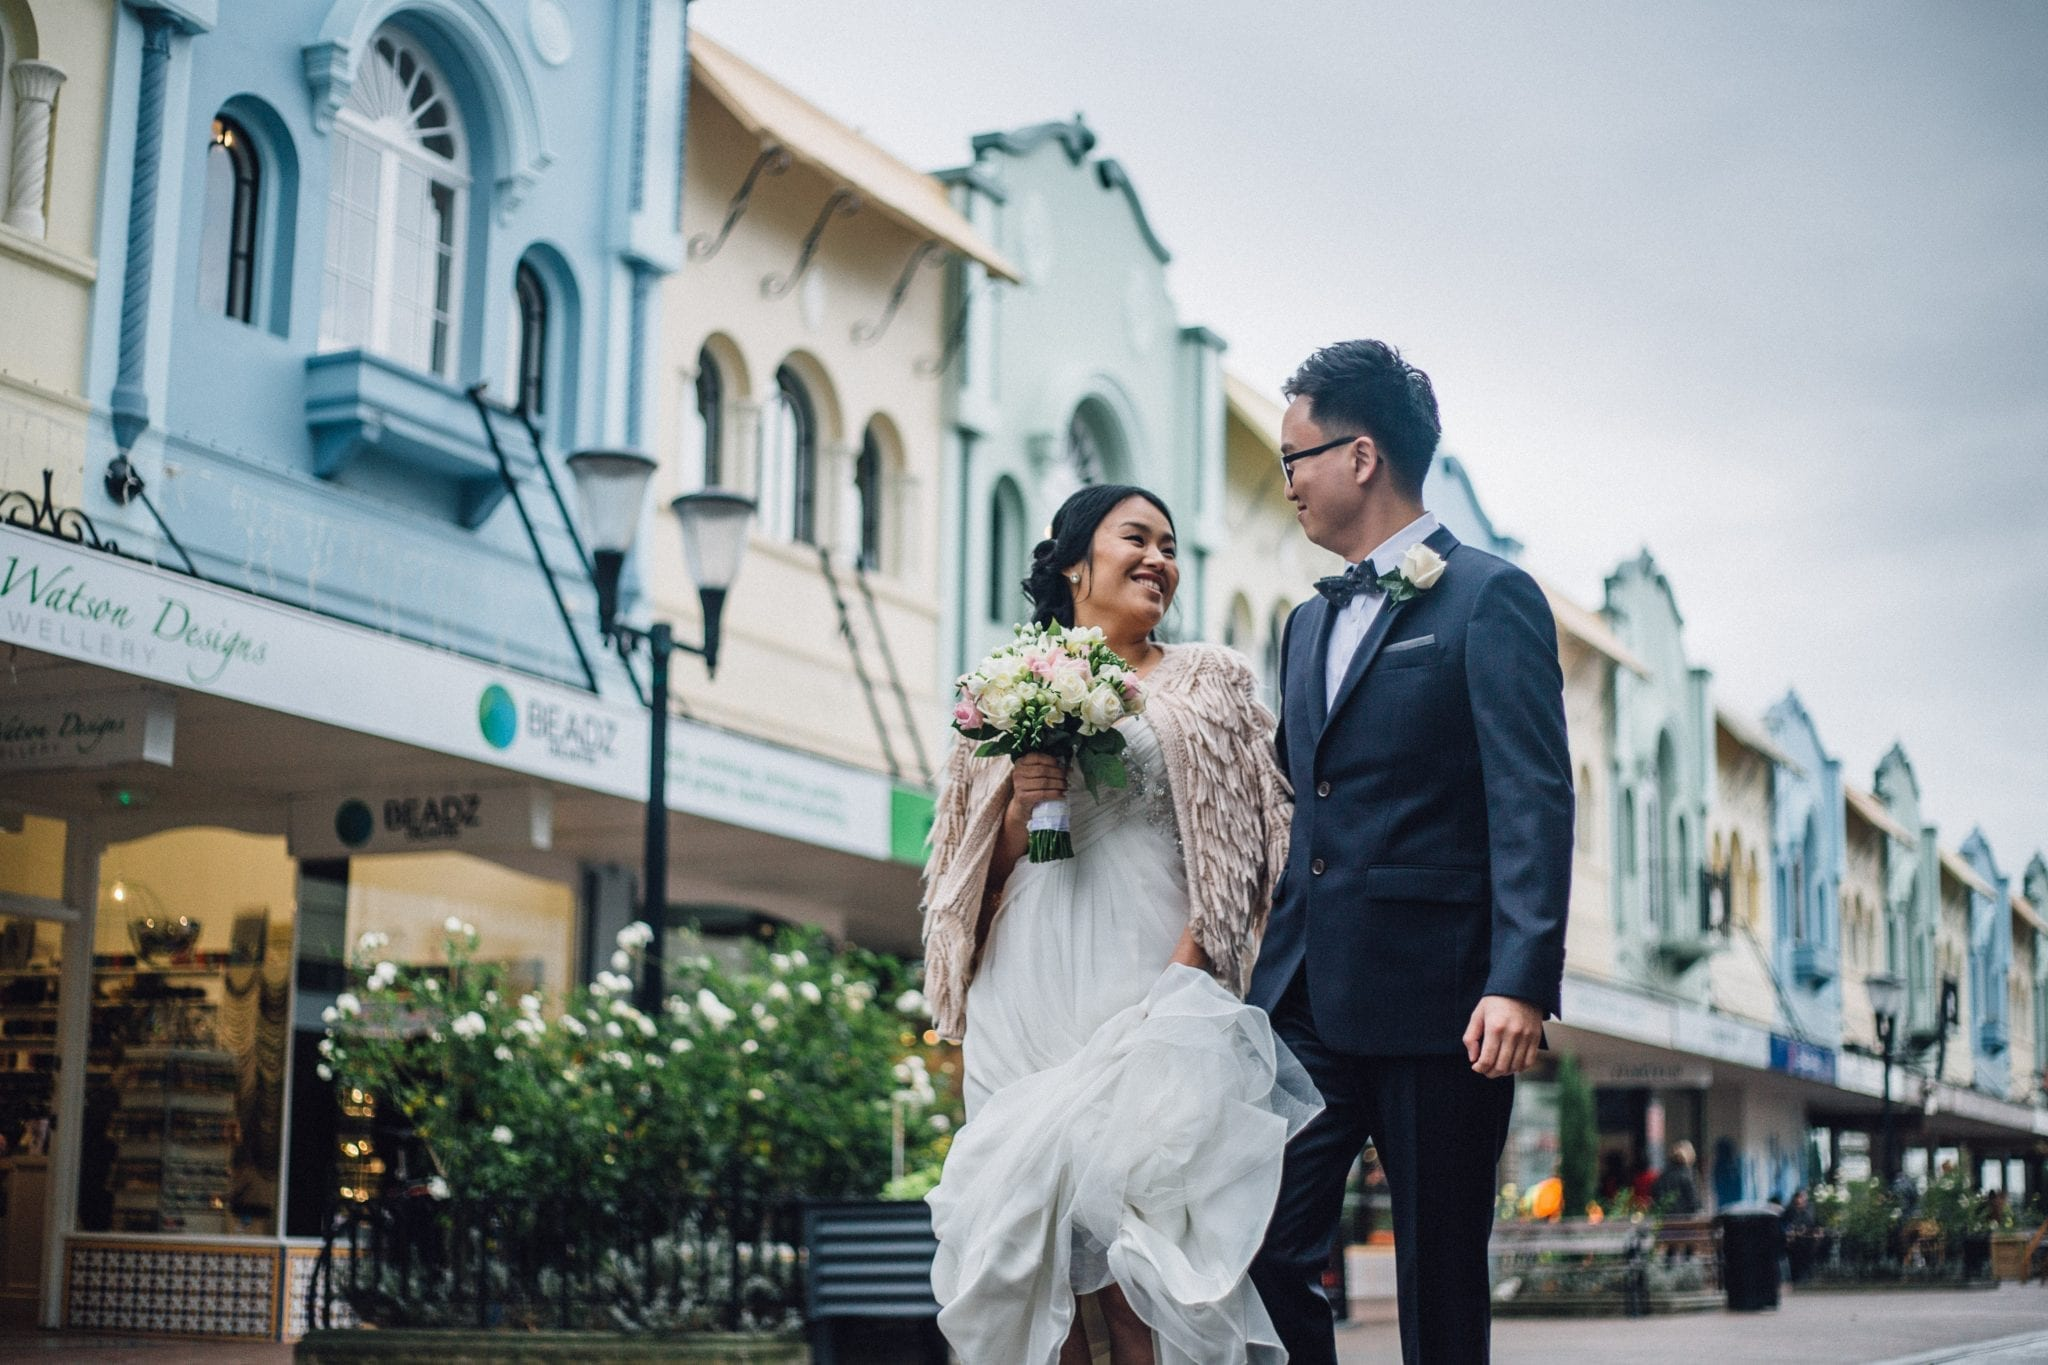 kim chan events | Asian Bride and groom celebrate together after ceremony, carrying bouquet of pink and white blooms, walking down historic New Regent Street,  New Zealand